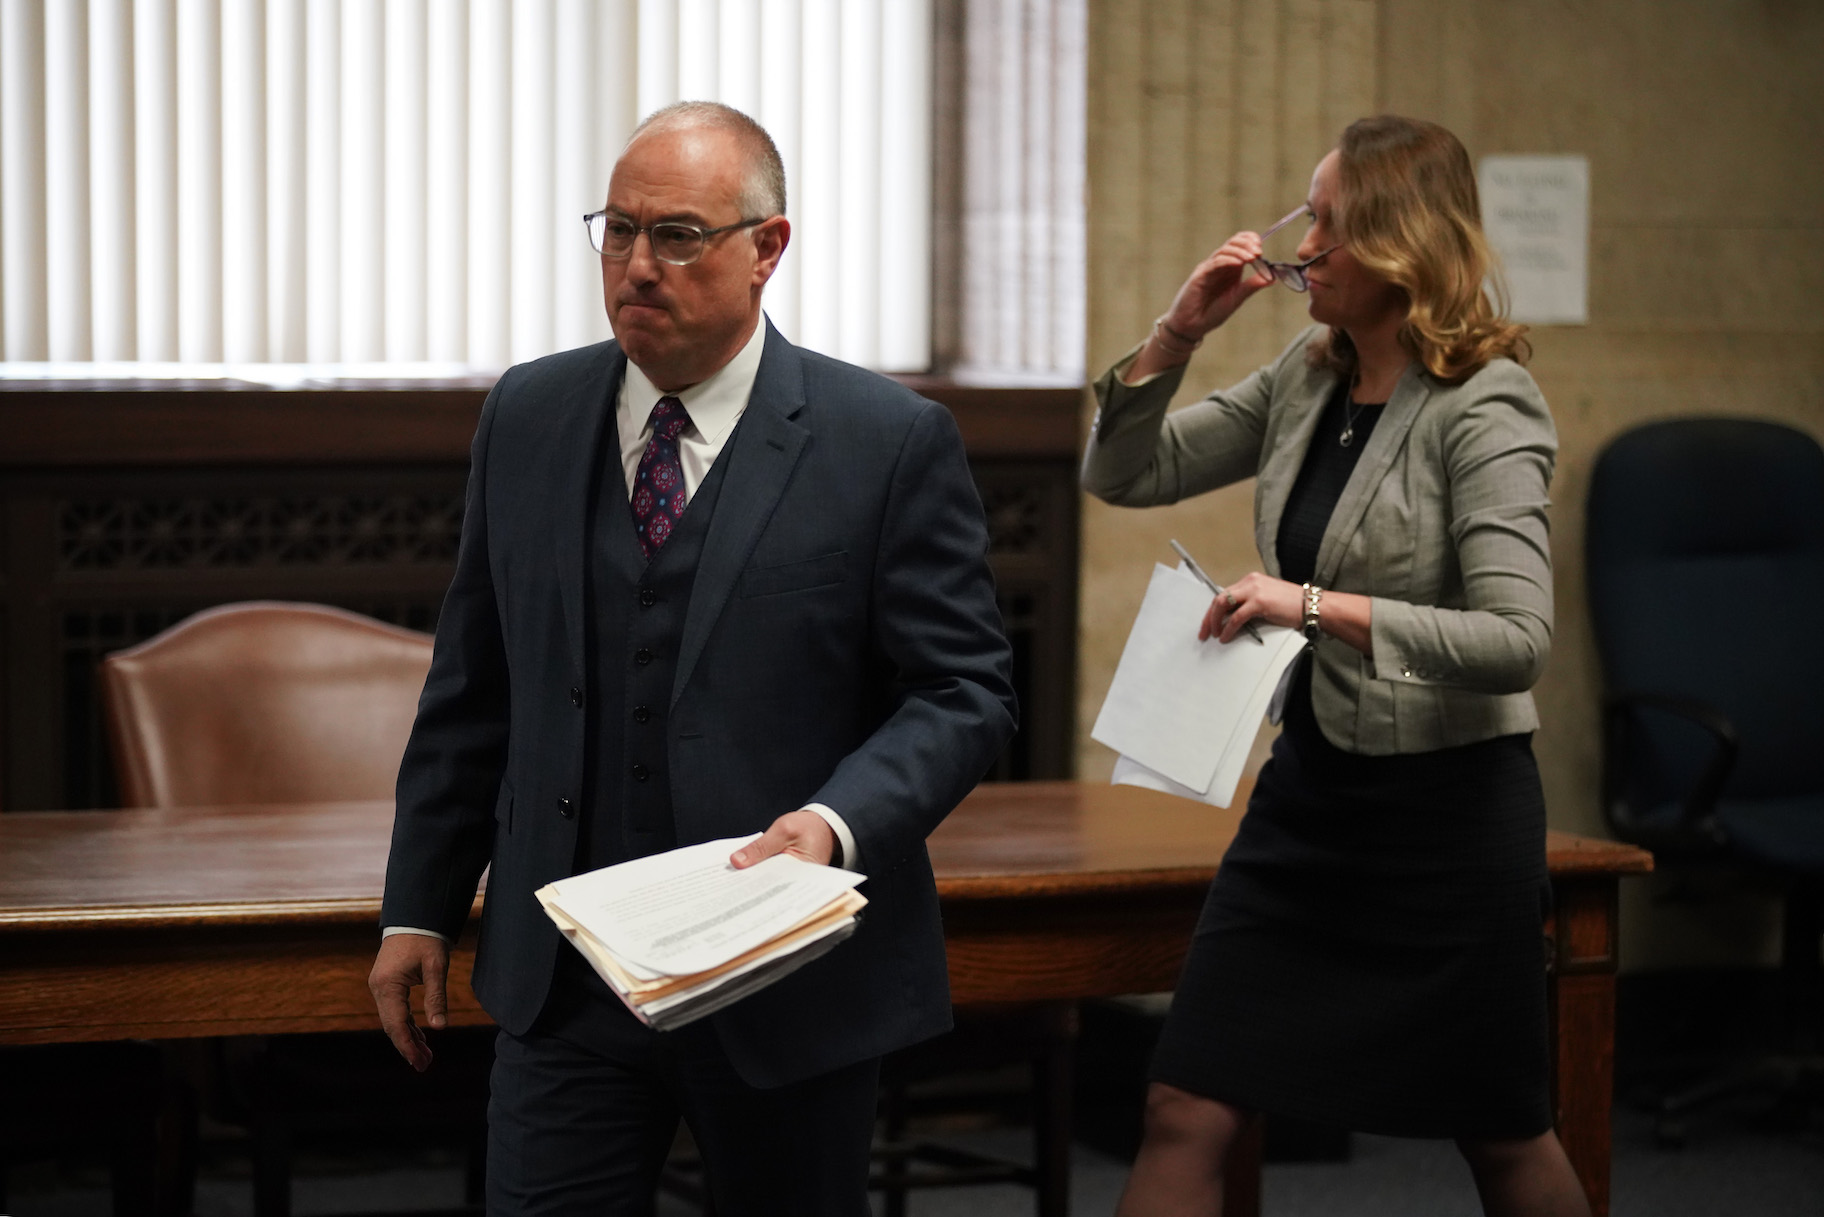 Steve Greenberg, attorney for R. Kelly, files a motion before Judge Lawrence Flood requesting law enforcement officials preserve all communications between prosecutors and attorney Michael Avenatti, at Leighton Criminal Court Building, Monday, April 1, 2019. (E. Jason Wambsgans/Chicago Tribune/Pool)